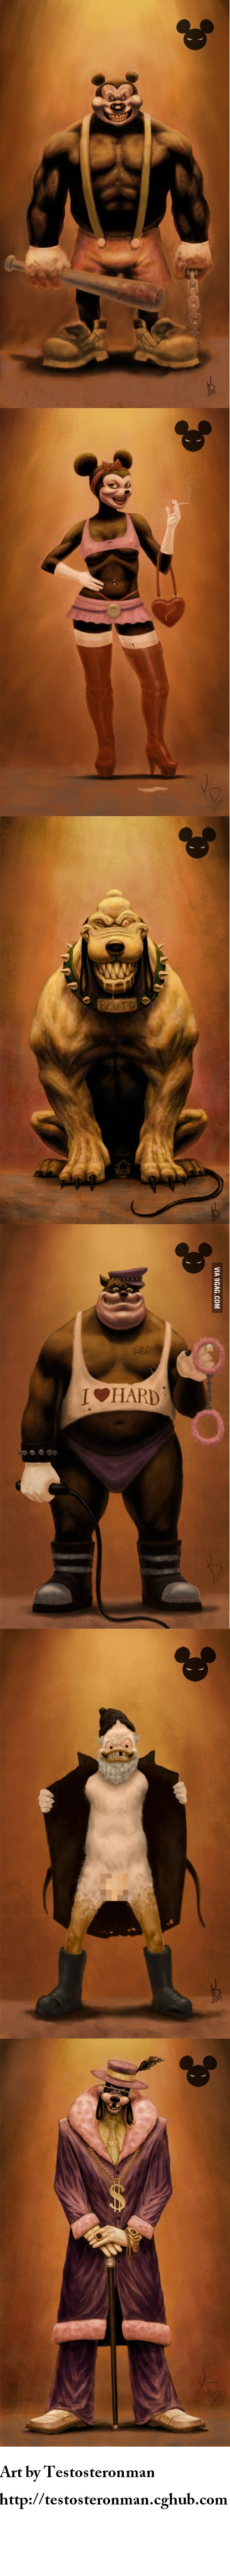 What if Disney's characters were bad?